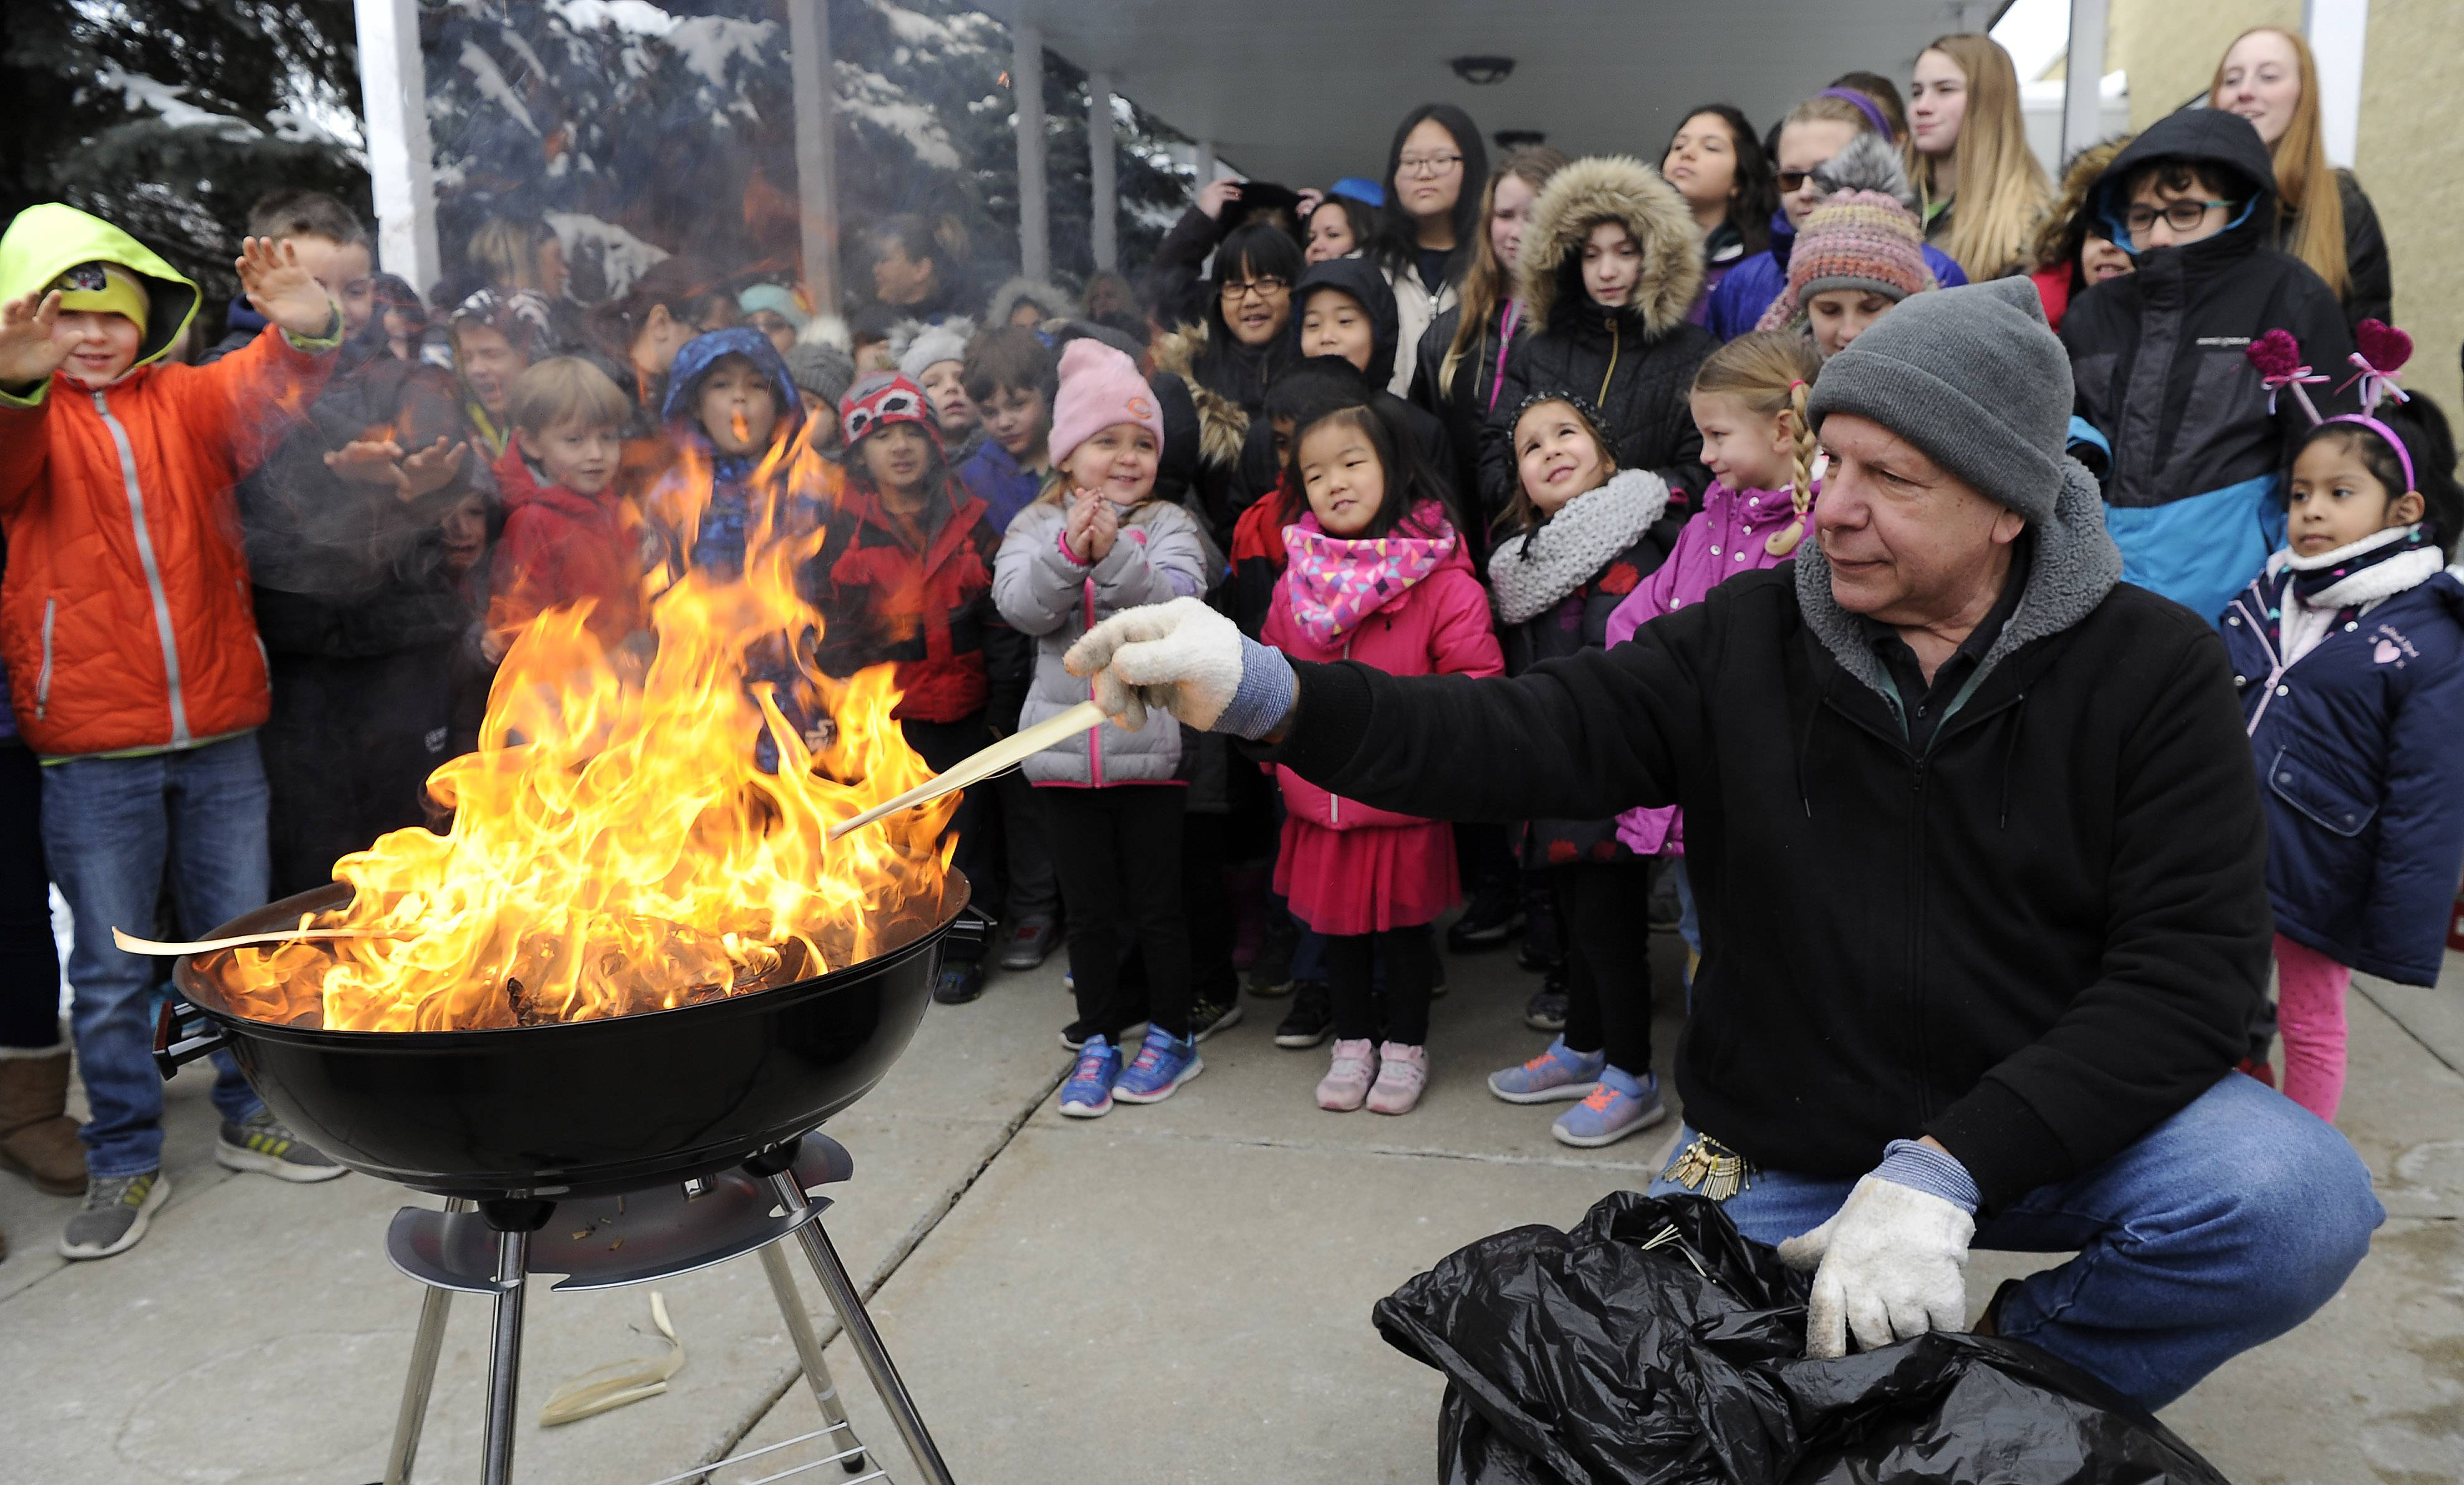 Rich Miceli, facility manager at St. Alphonsus Liguori Church in Prospect Heights, tosses palm leaves into a fire Tuesday as students from the parish school look on.